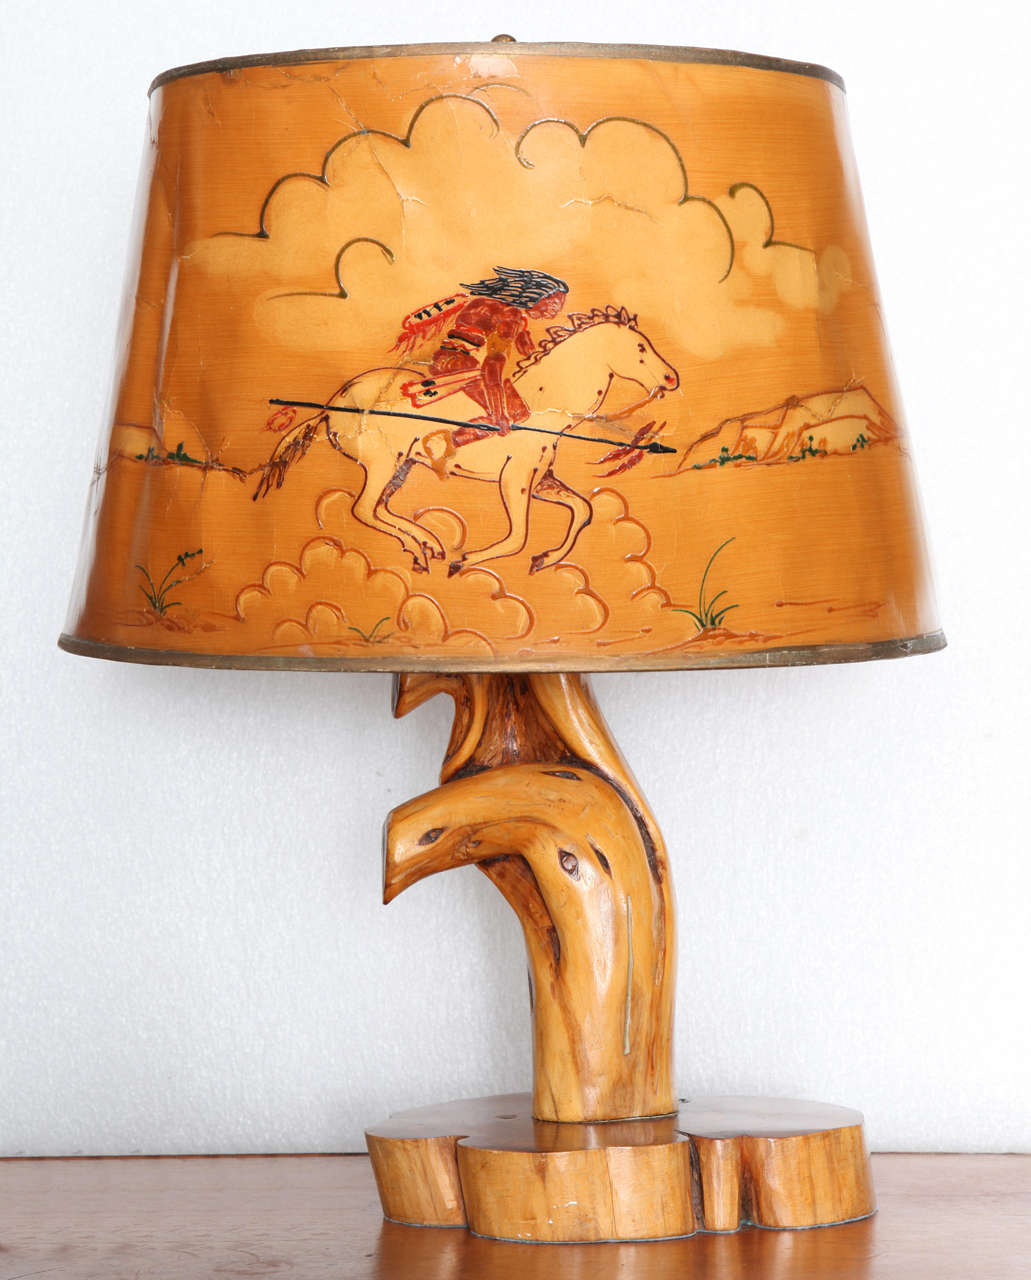 Influenced by the work of Thomas Molesworth's Shoshone furniture company, the burl root lamp base with goatskin lampshade has exquisite hand-painted scene of Indian brave on horseback hunting buffalo with spear.  Comes from Wyoming.